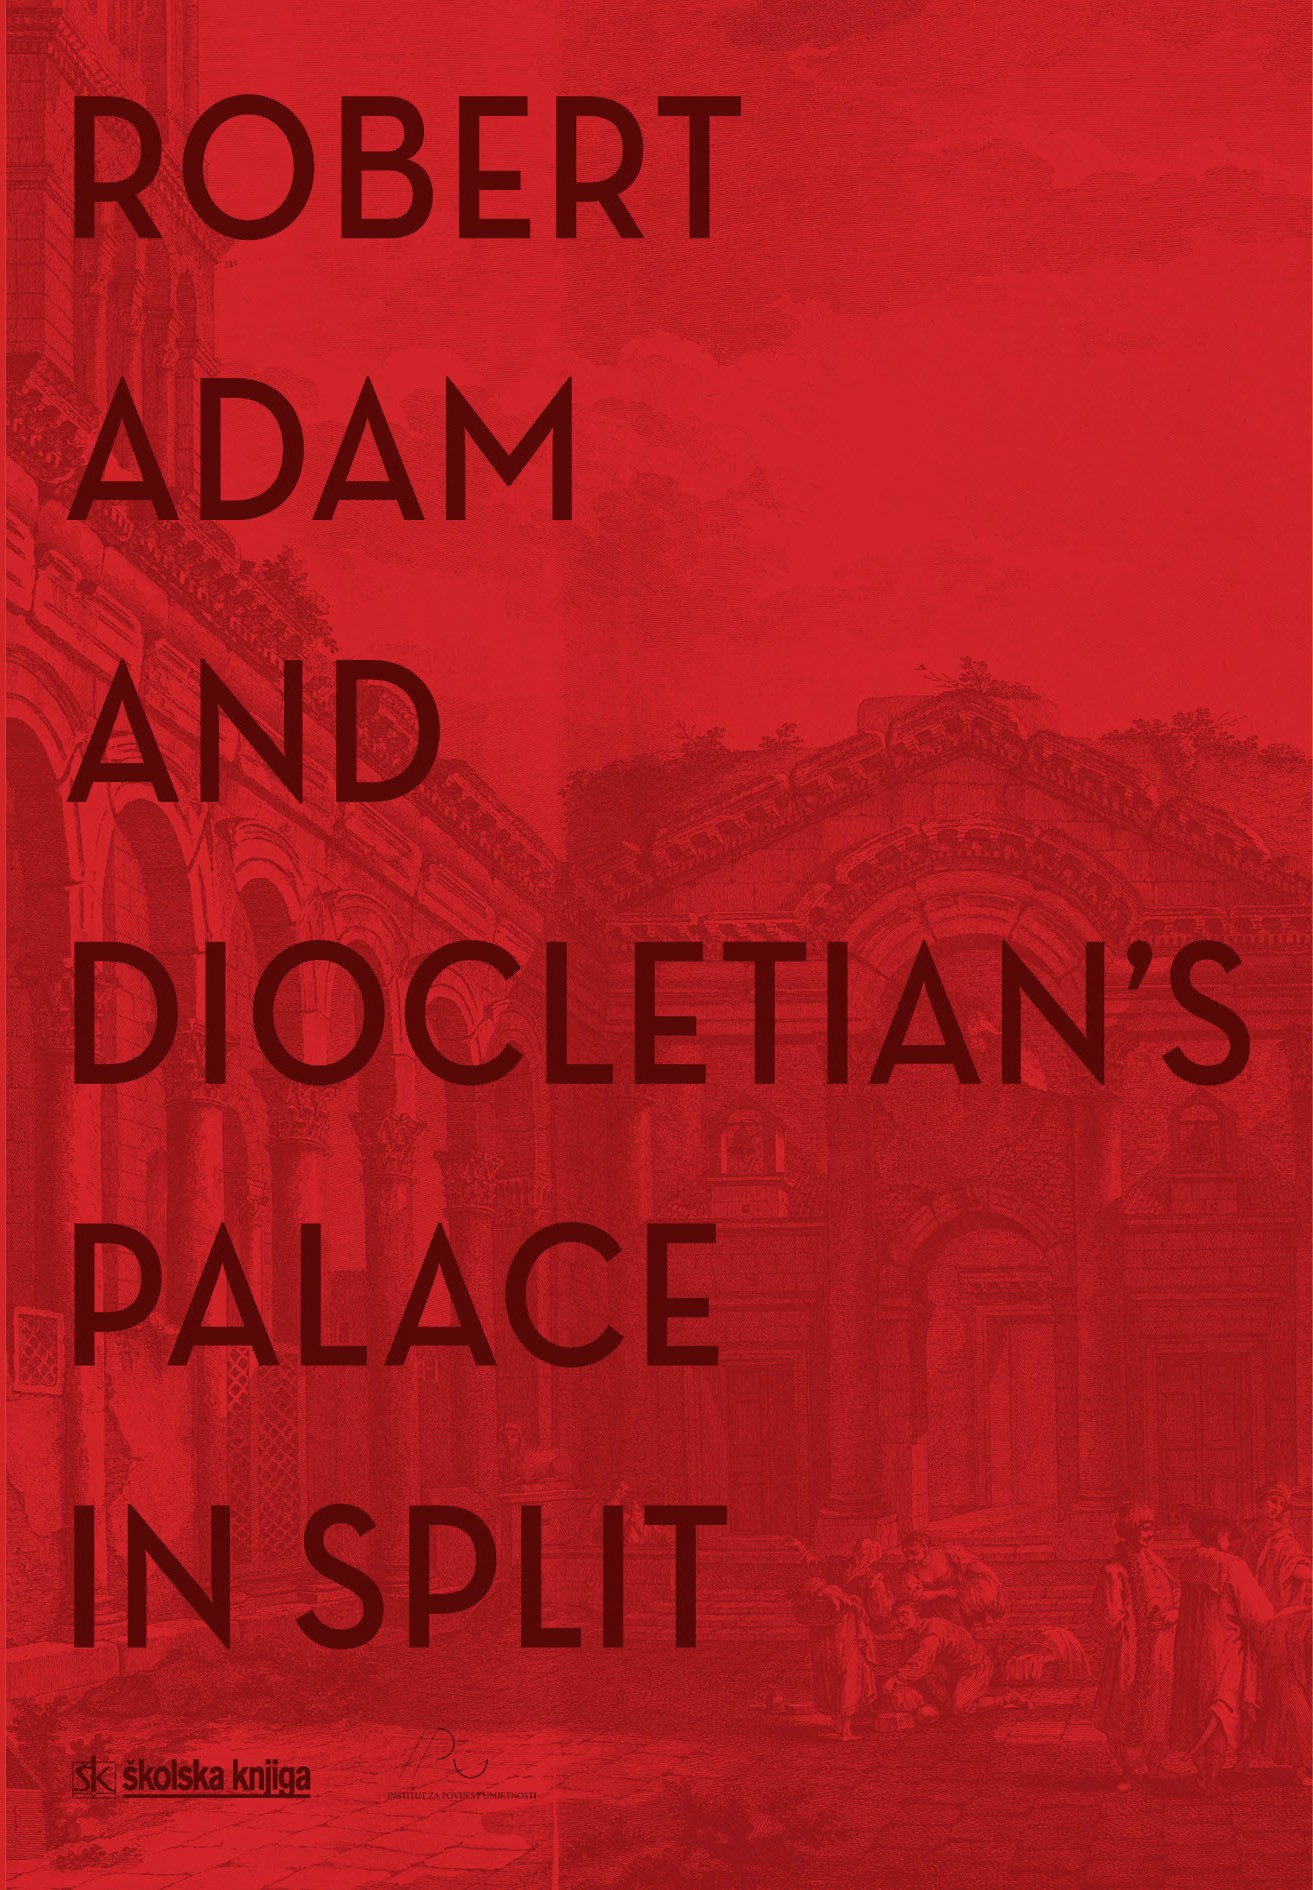 ROBERT ADAM AND DIOCLETIAN'S PALACE IN SPLIT